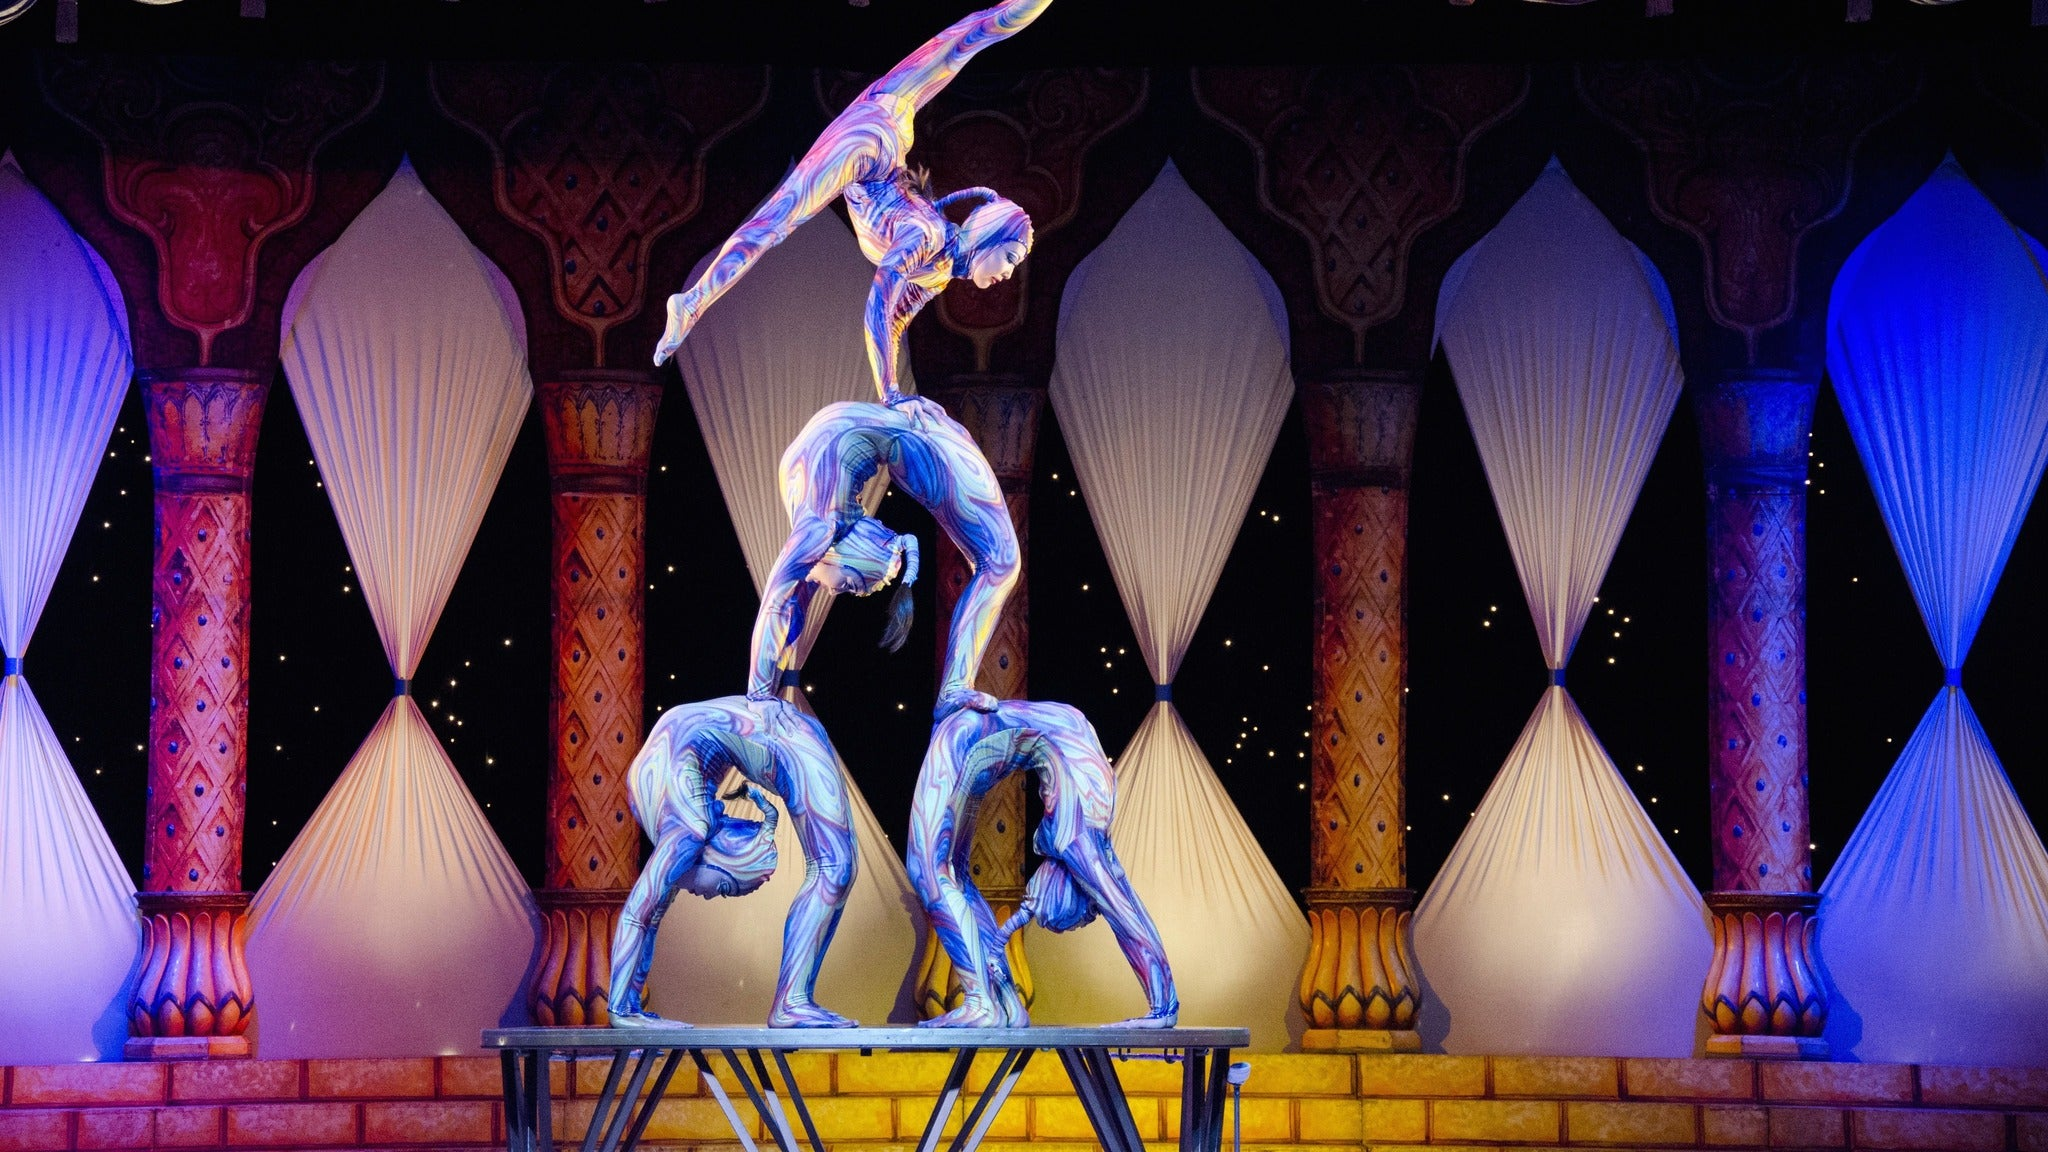 Circo Hermanos Vazquez at Bojangles' Coliseum